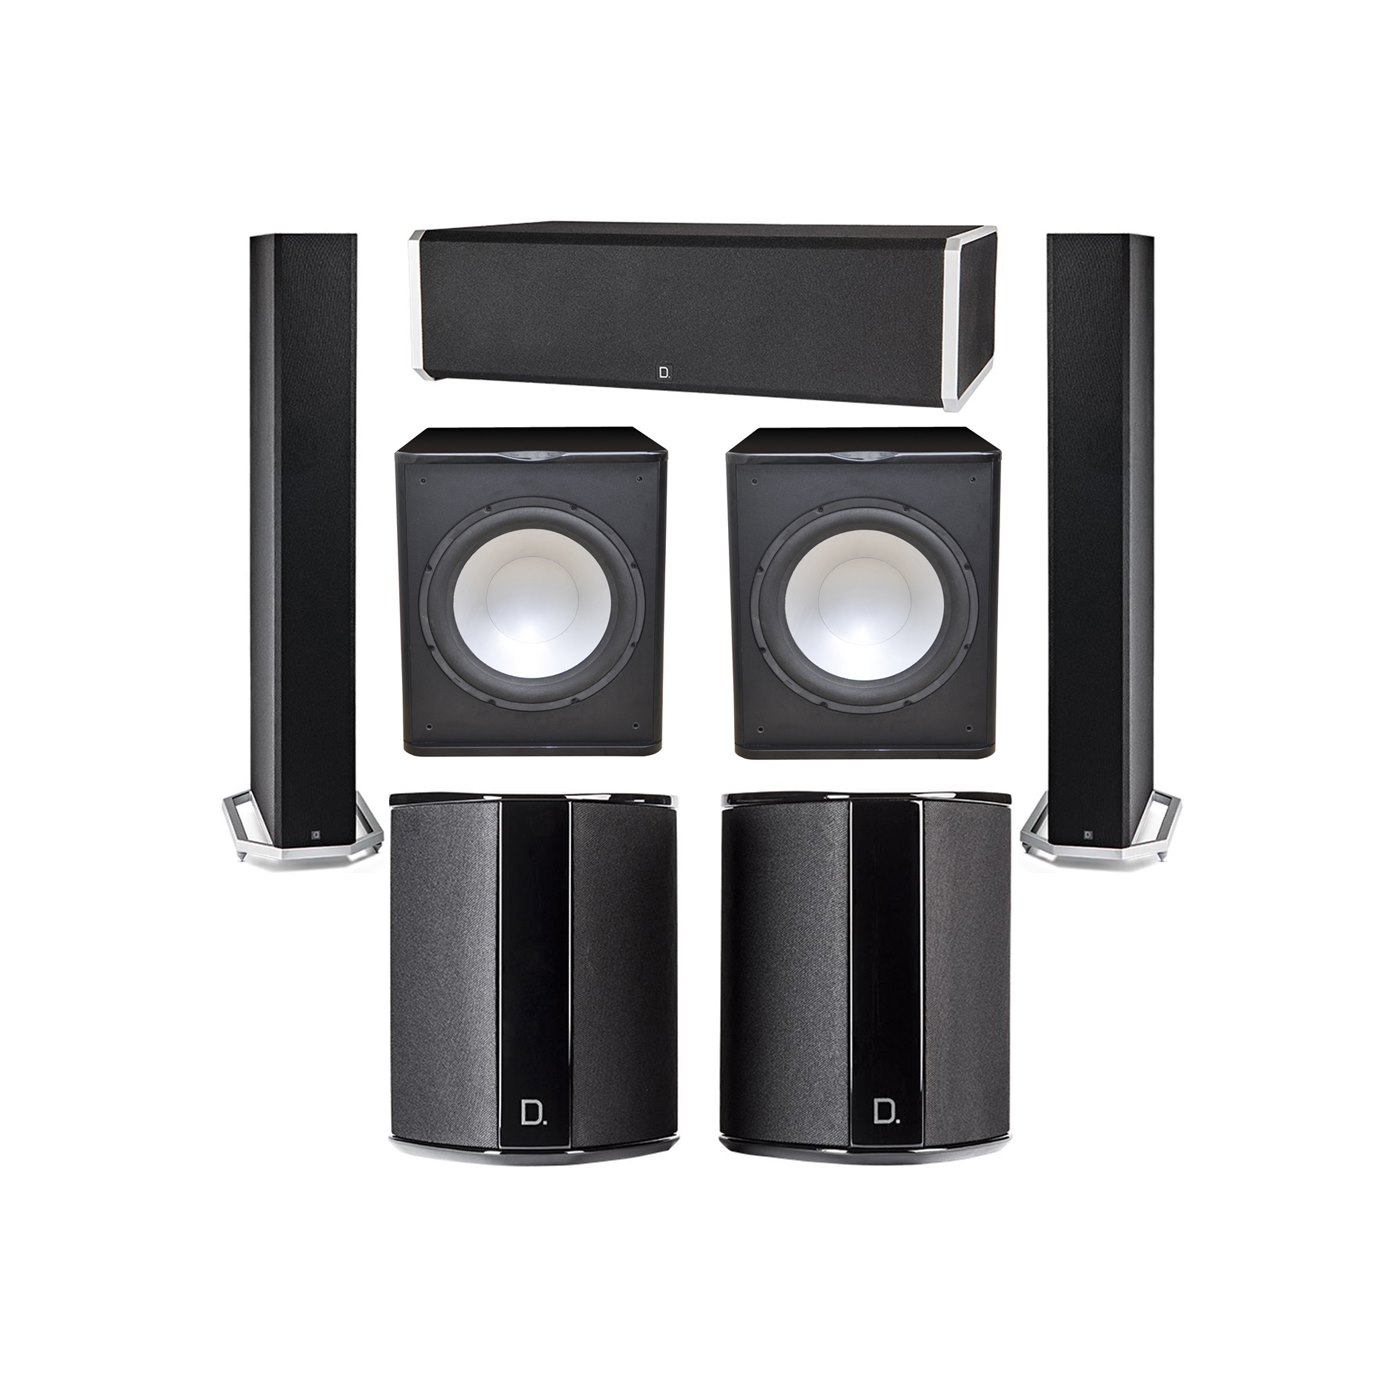 Definitive Technology 5.2 System with 2 BP9060 Tower Speakers, 1 CS9060 Center Channel Speaker, 2 SR9040 Surround Speaker, 2 Premier Acoustic PA-150 Subwoofer